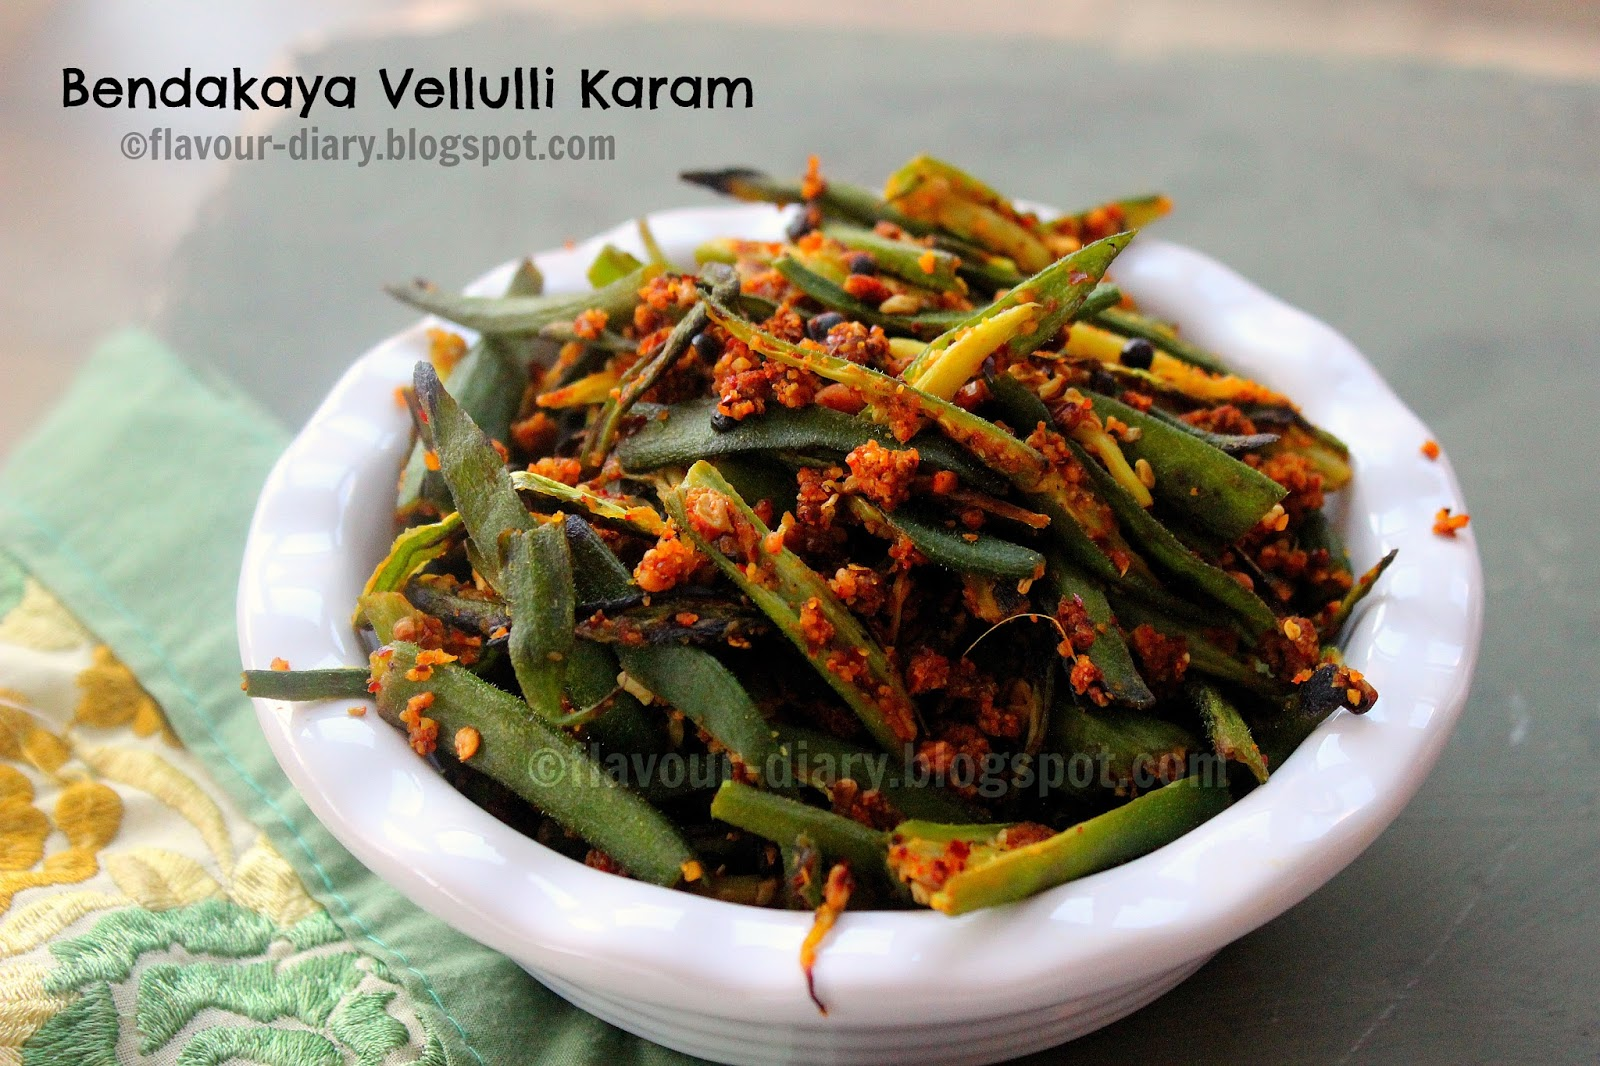 Bendakaya vellulli karam recipe okra in spicy garlic mix karam podi means spice mix made of different spices and have many variations and names depending on ingredients used karam is a telugu word which means forumfinder Images